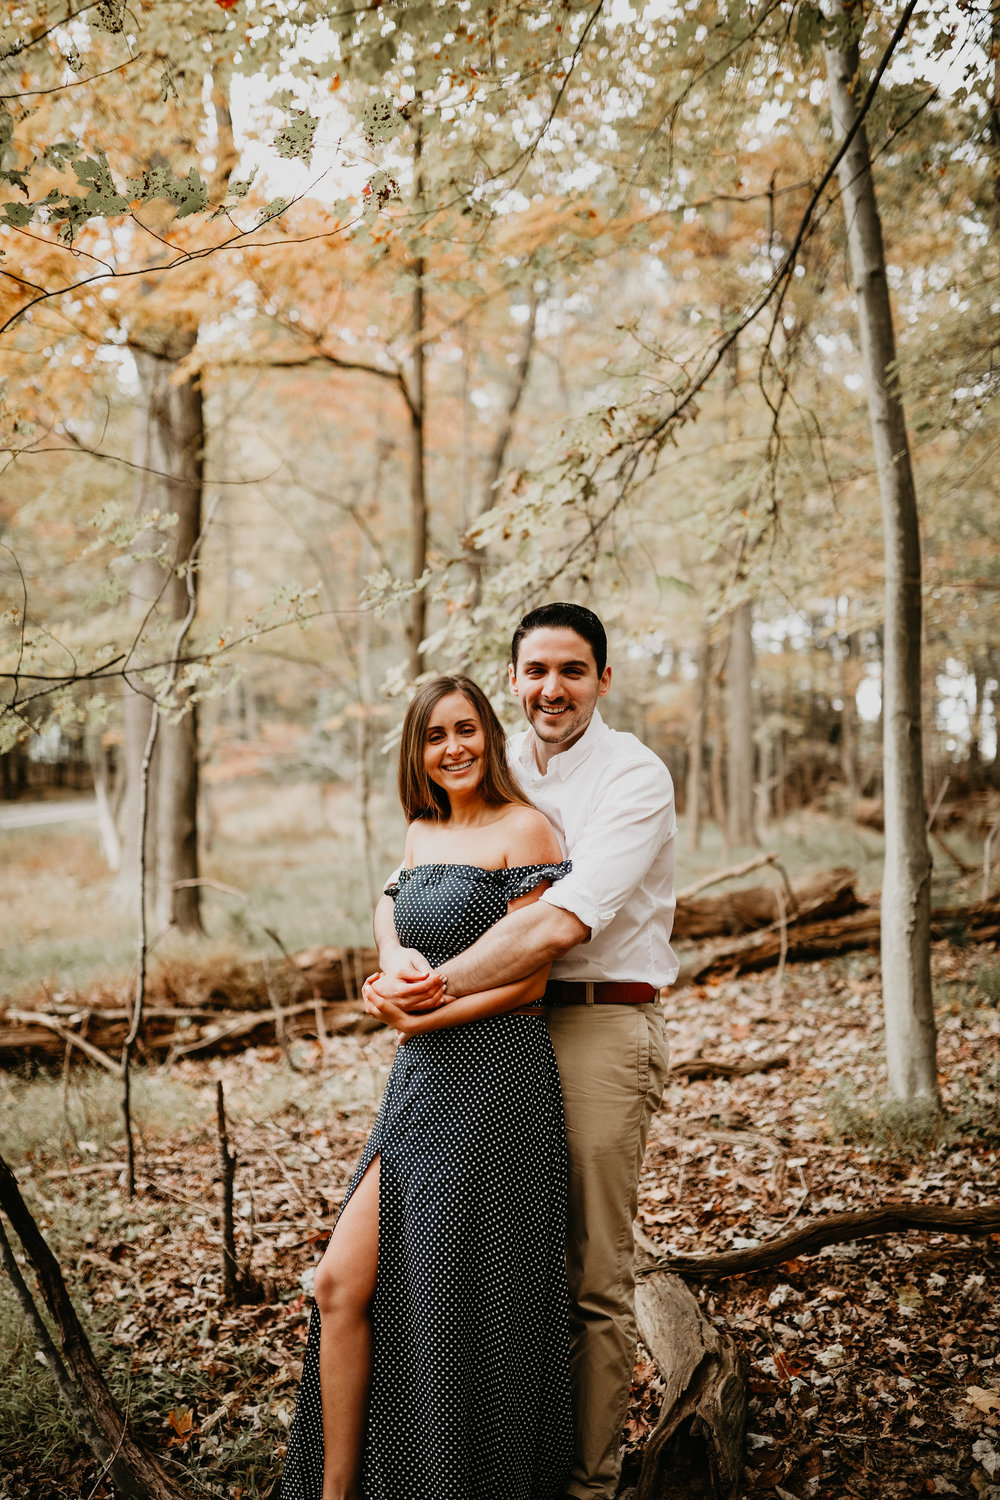 Genesis + Octavio Engagements 41 (1 of 1).jpg